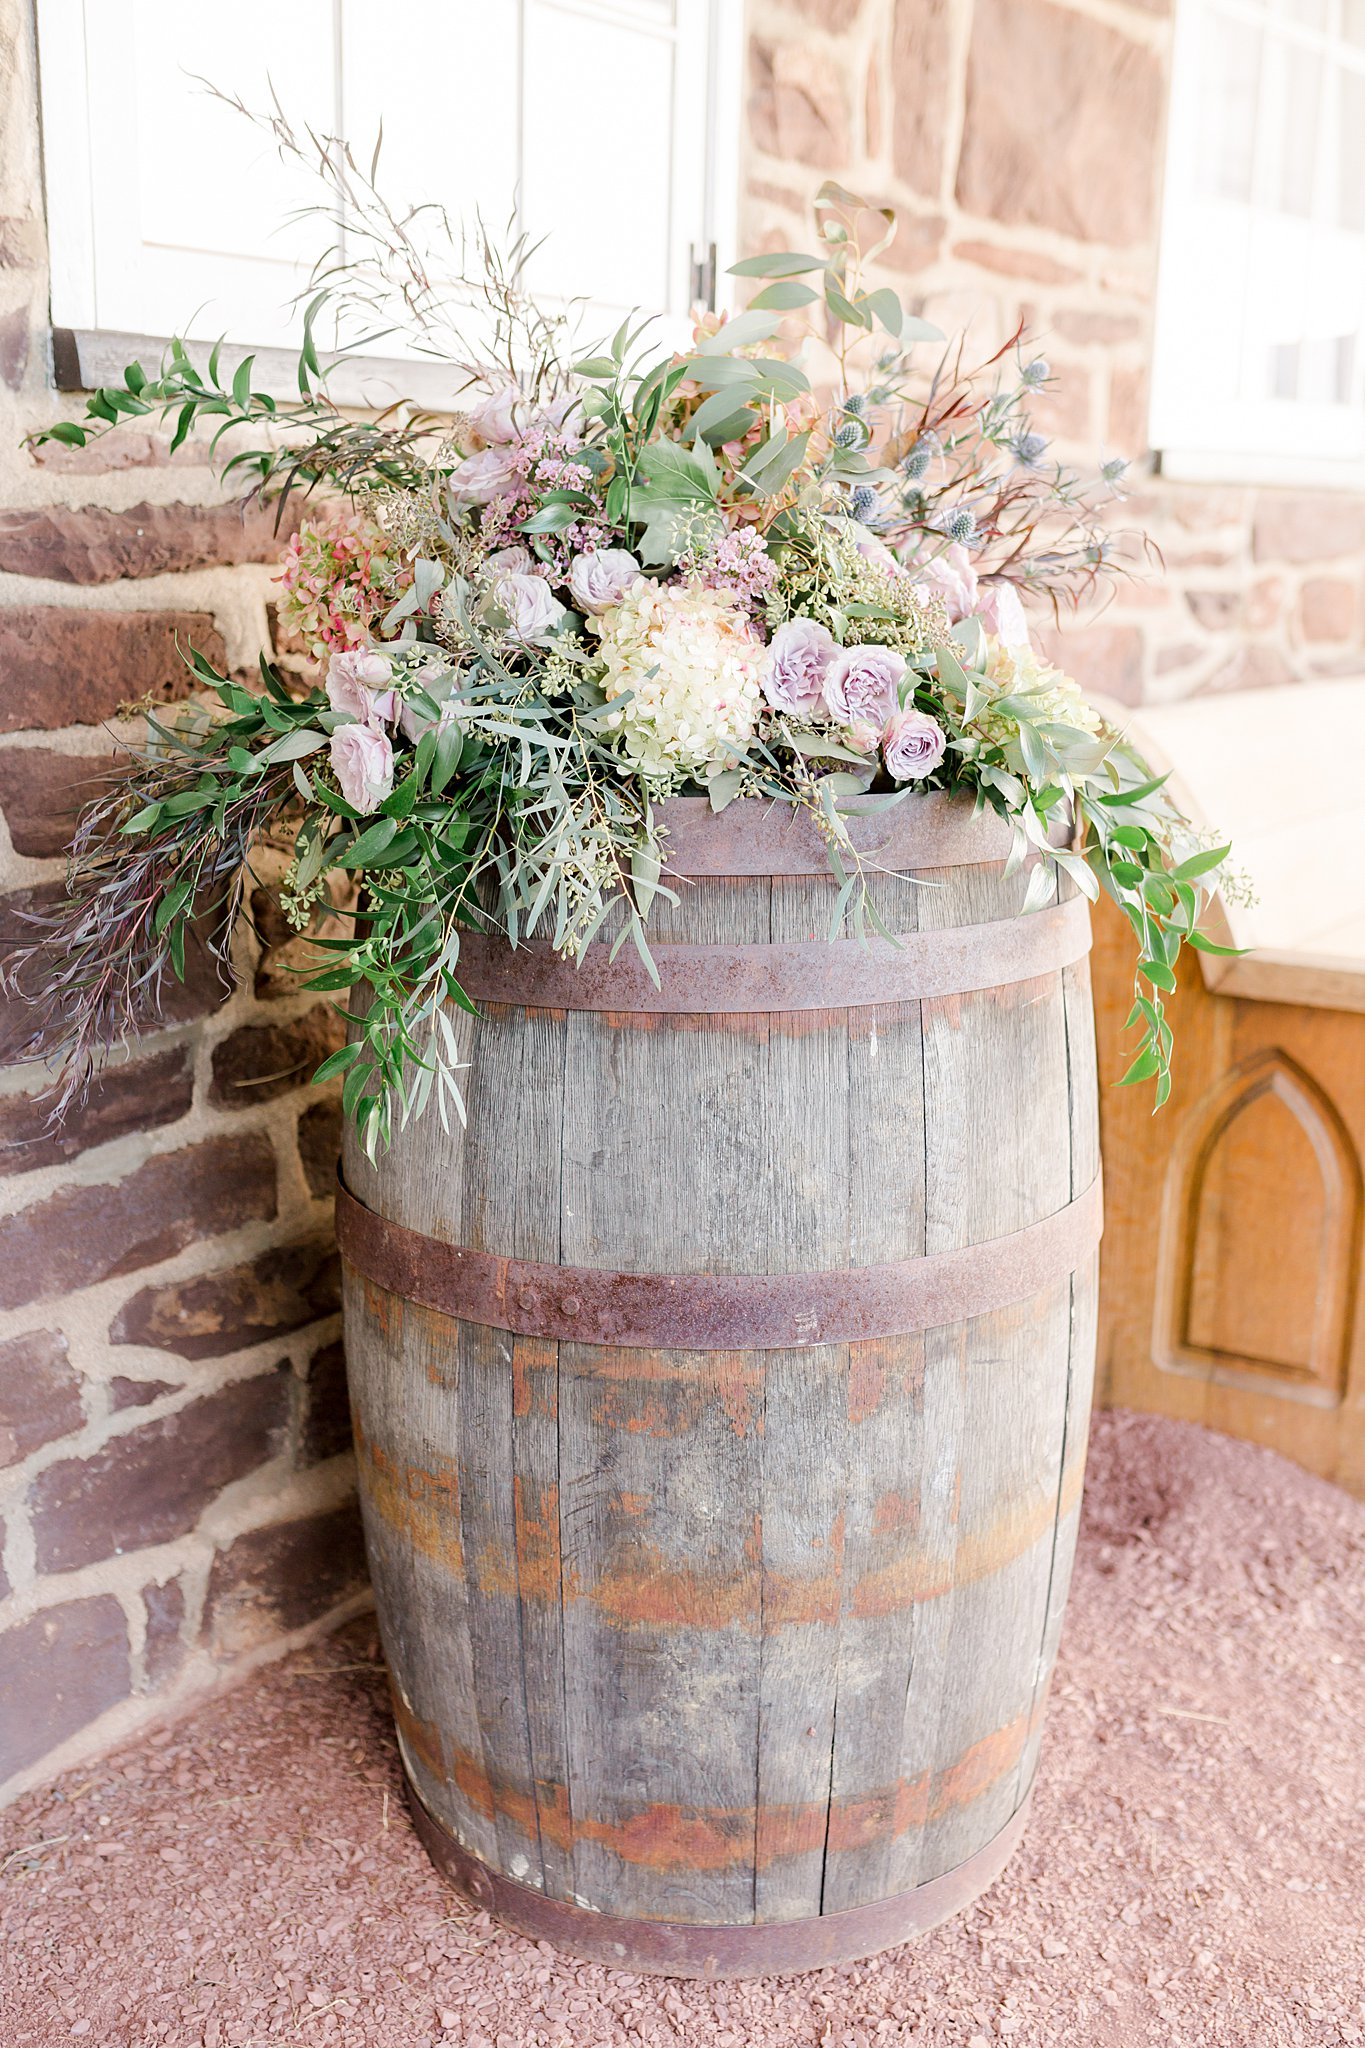 Lush Florals - Nothing says upscale rustic wedding like hand-gathered bouquets tied with flowing silk ribbon or gorgeous trailing table garlands. Floral wrapped trees, fresh swags on ceremony arbors, and pops of greenery are elements that can soften and elevate the rustic charm of your farm venue.